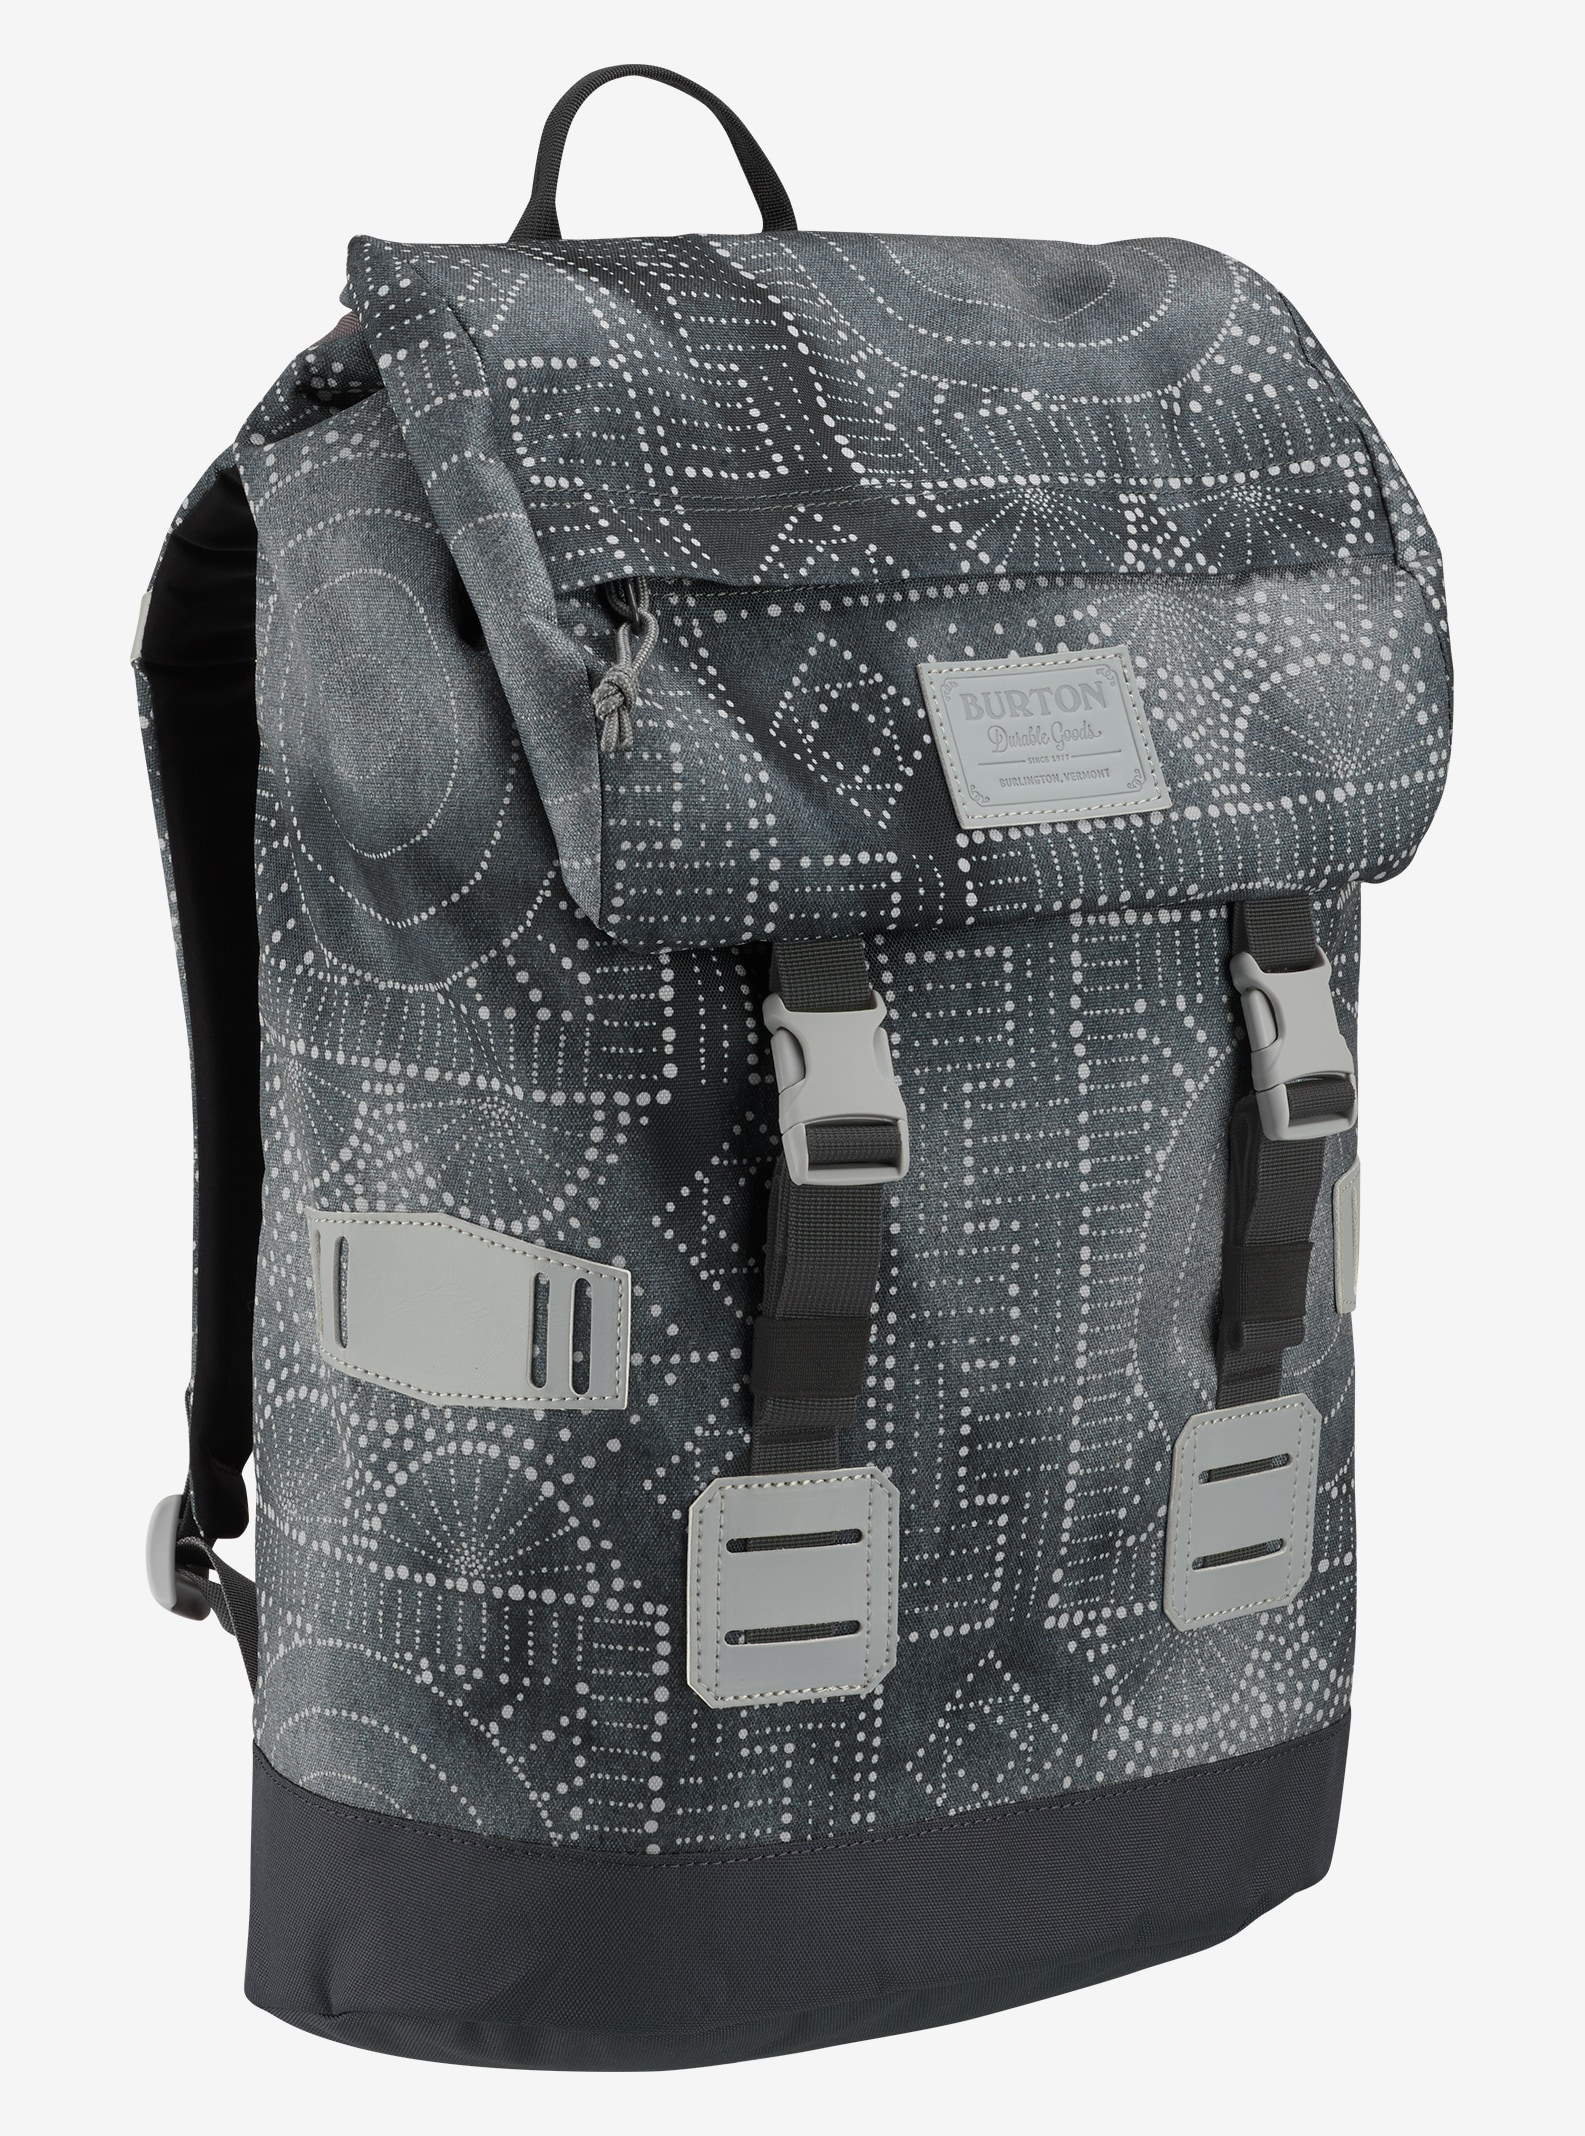 Burton Women's Tinder Backpack shown in Bandotta Print